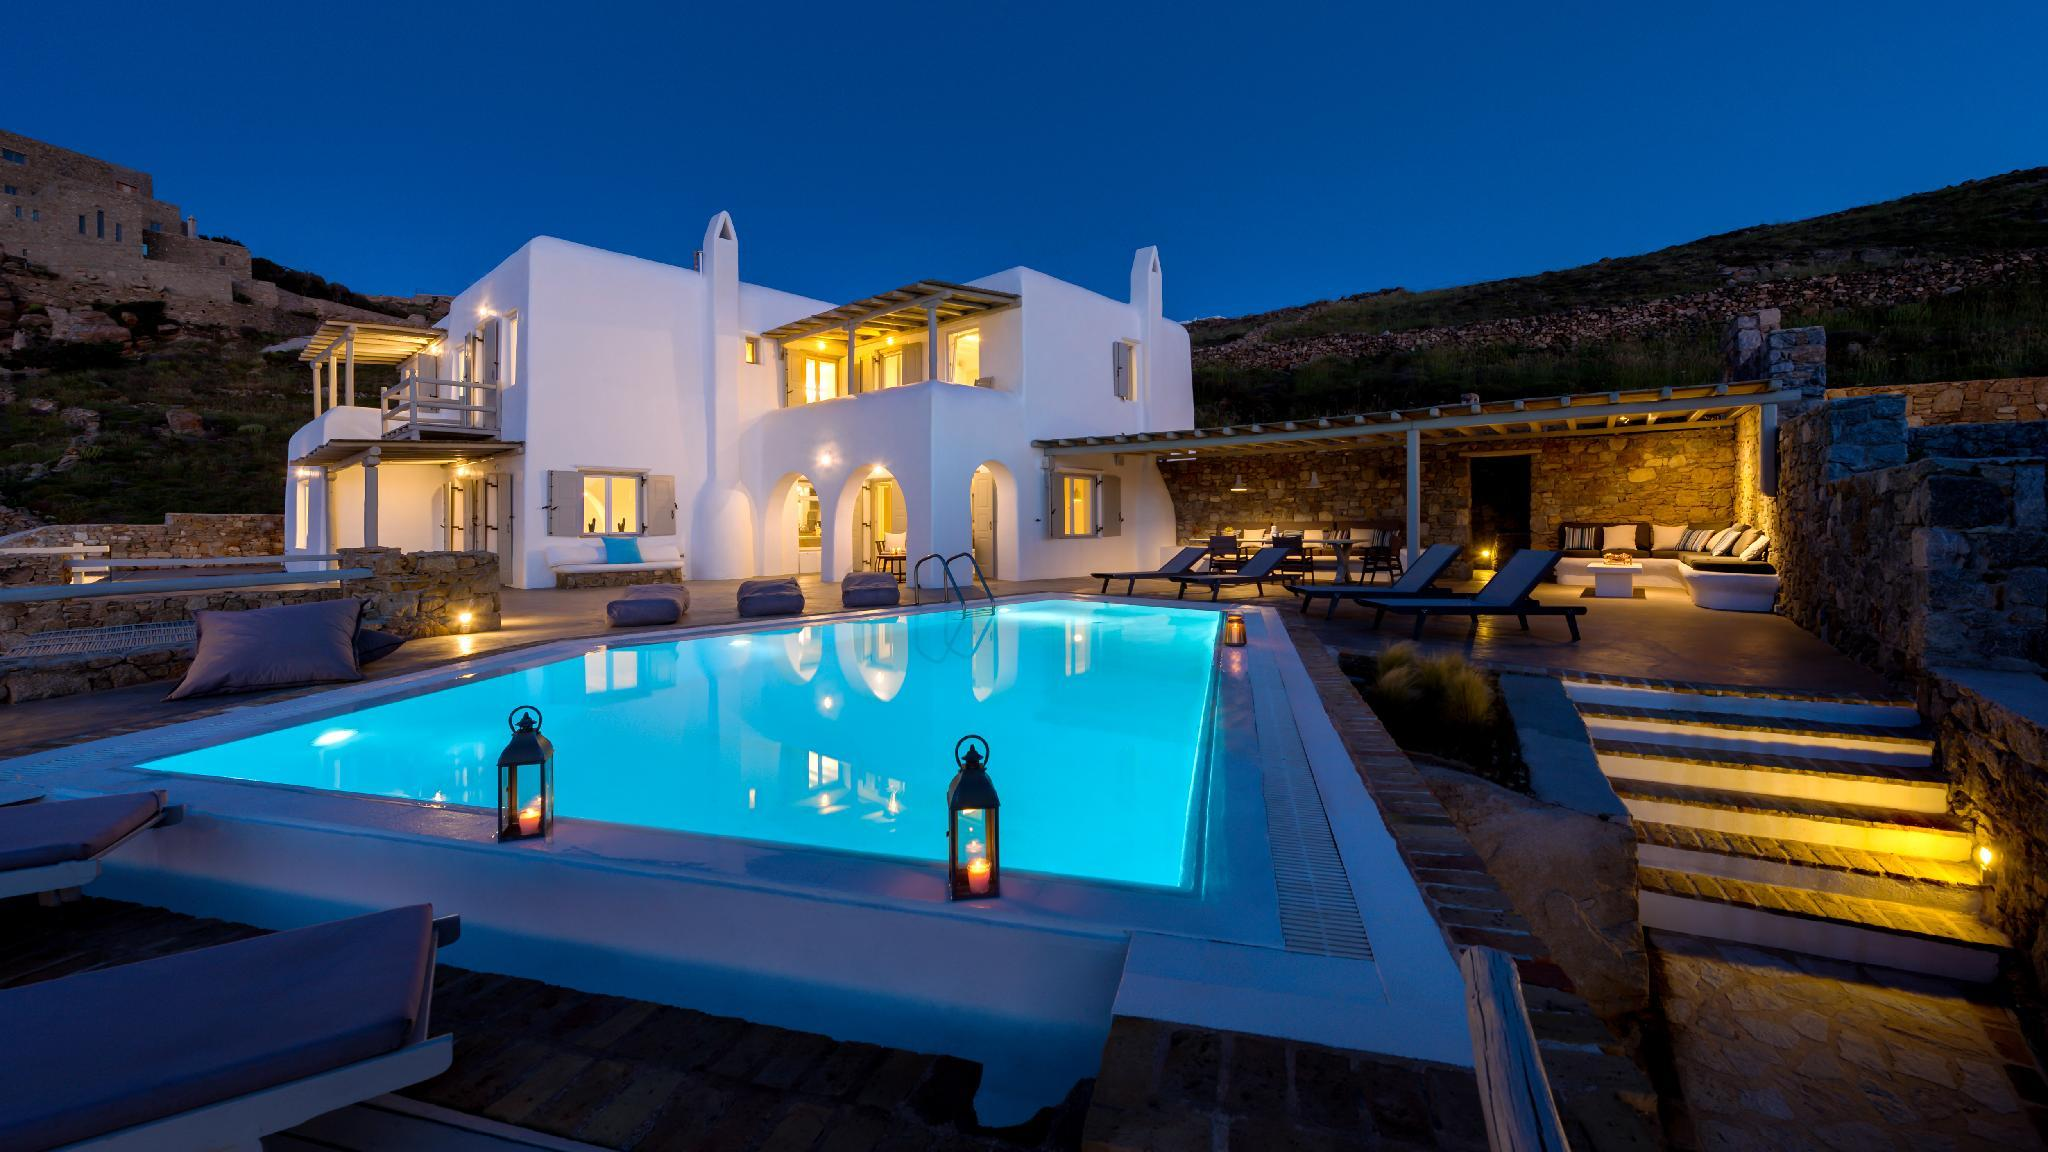 8 Bedroom Villa With Two Private Pools  Panorama